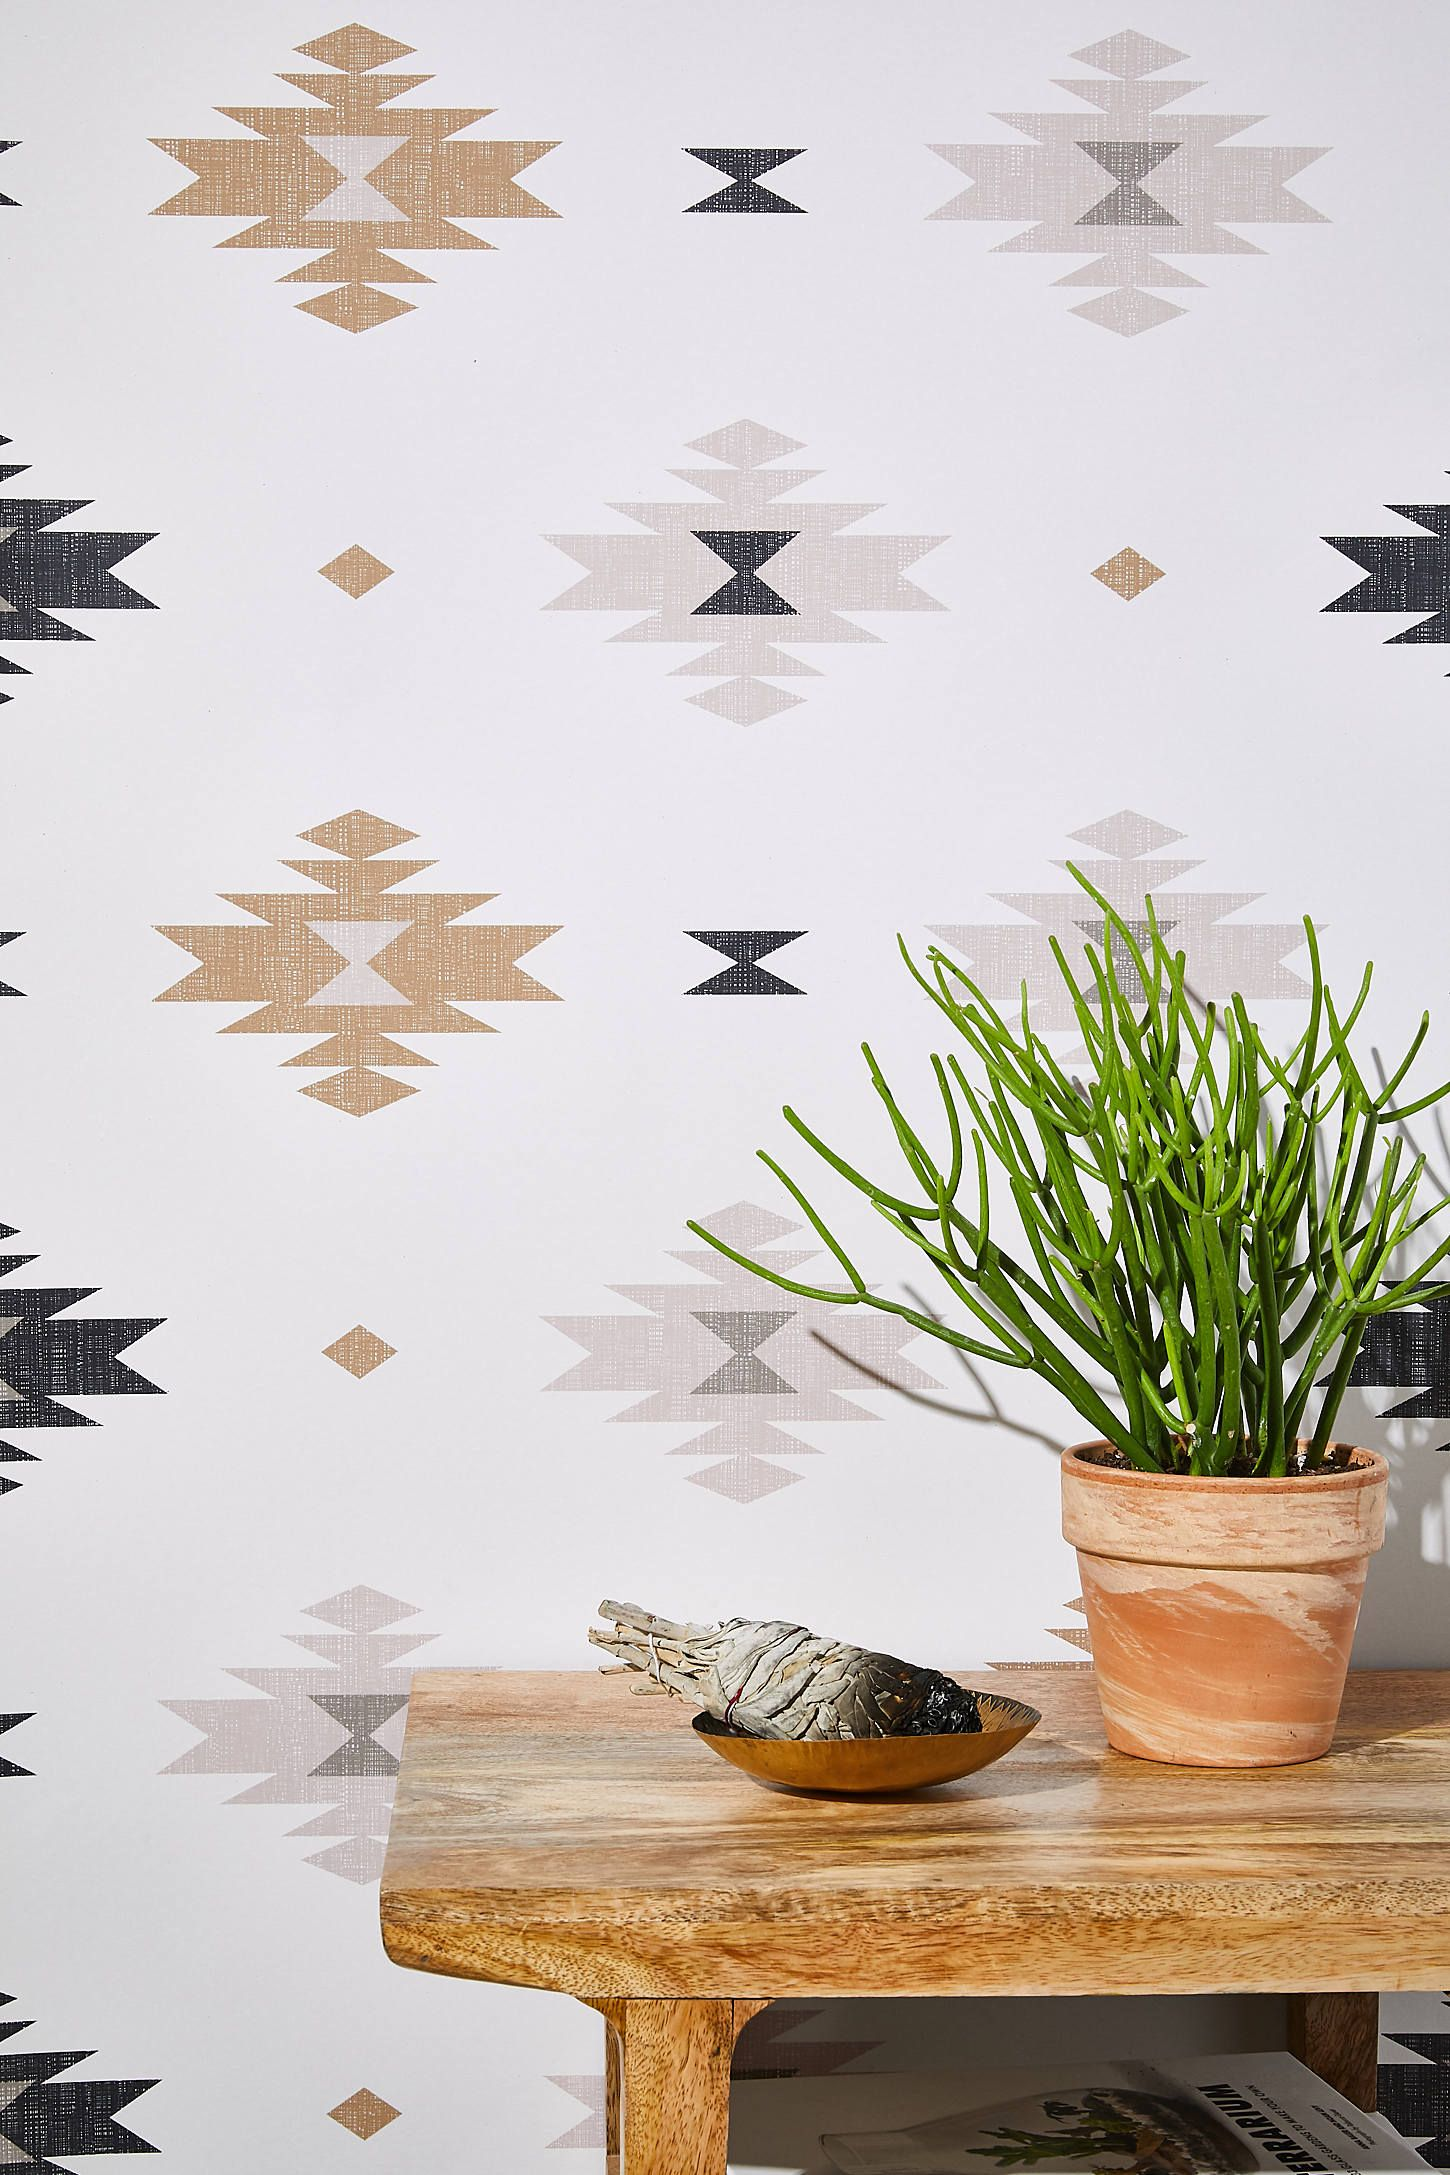 Mesa Geo Removable Wallpaper Removable Wallpaper Stick On Wallpaper Geometric Removable Wallpaper